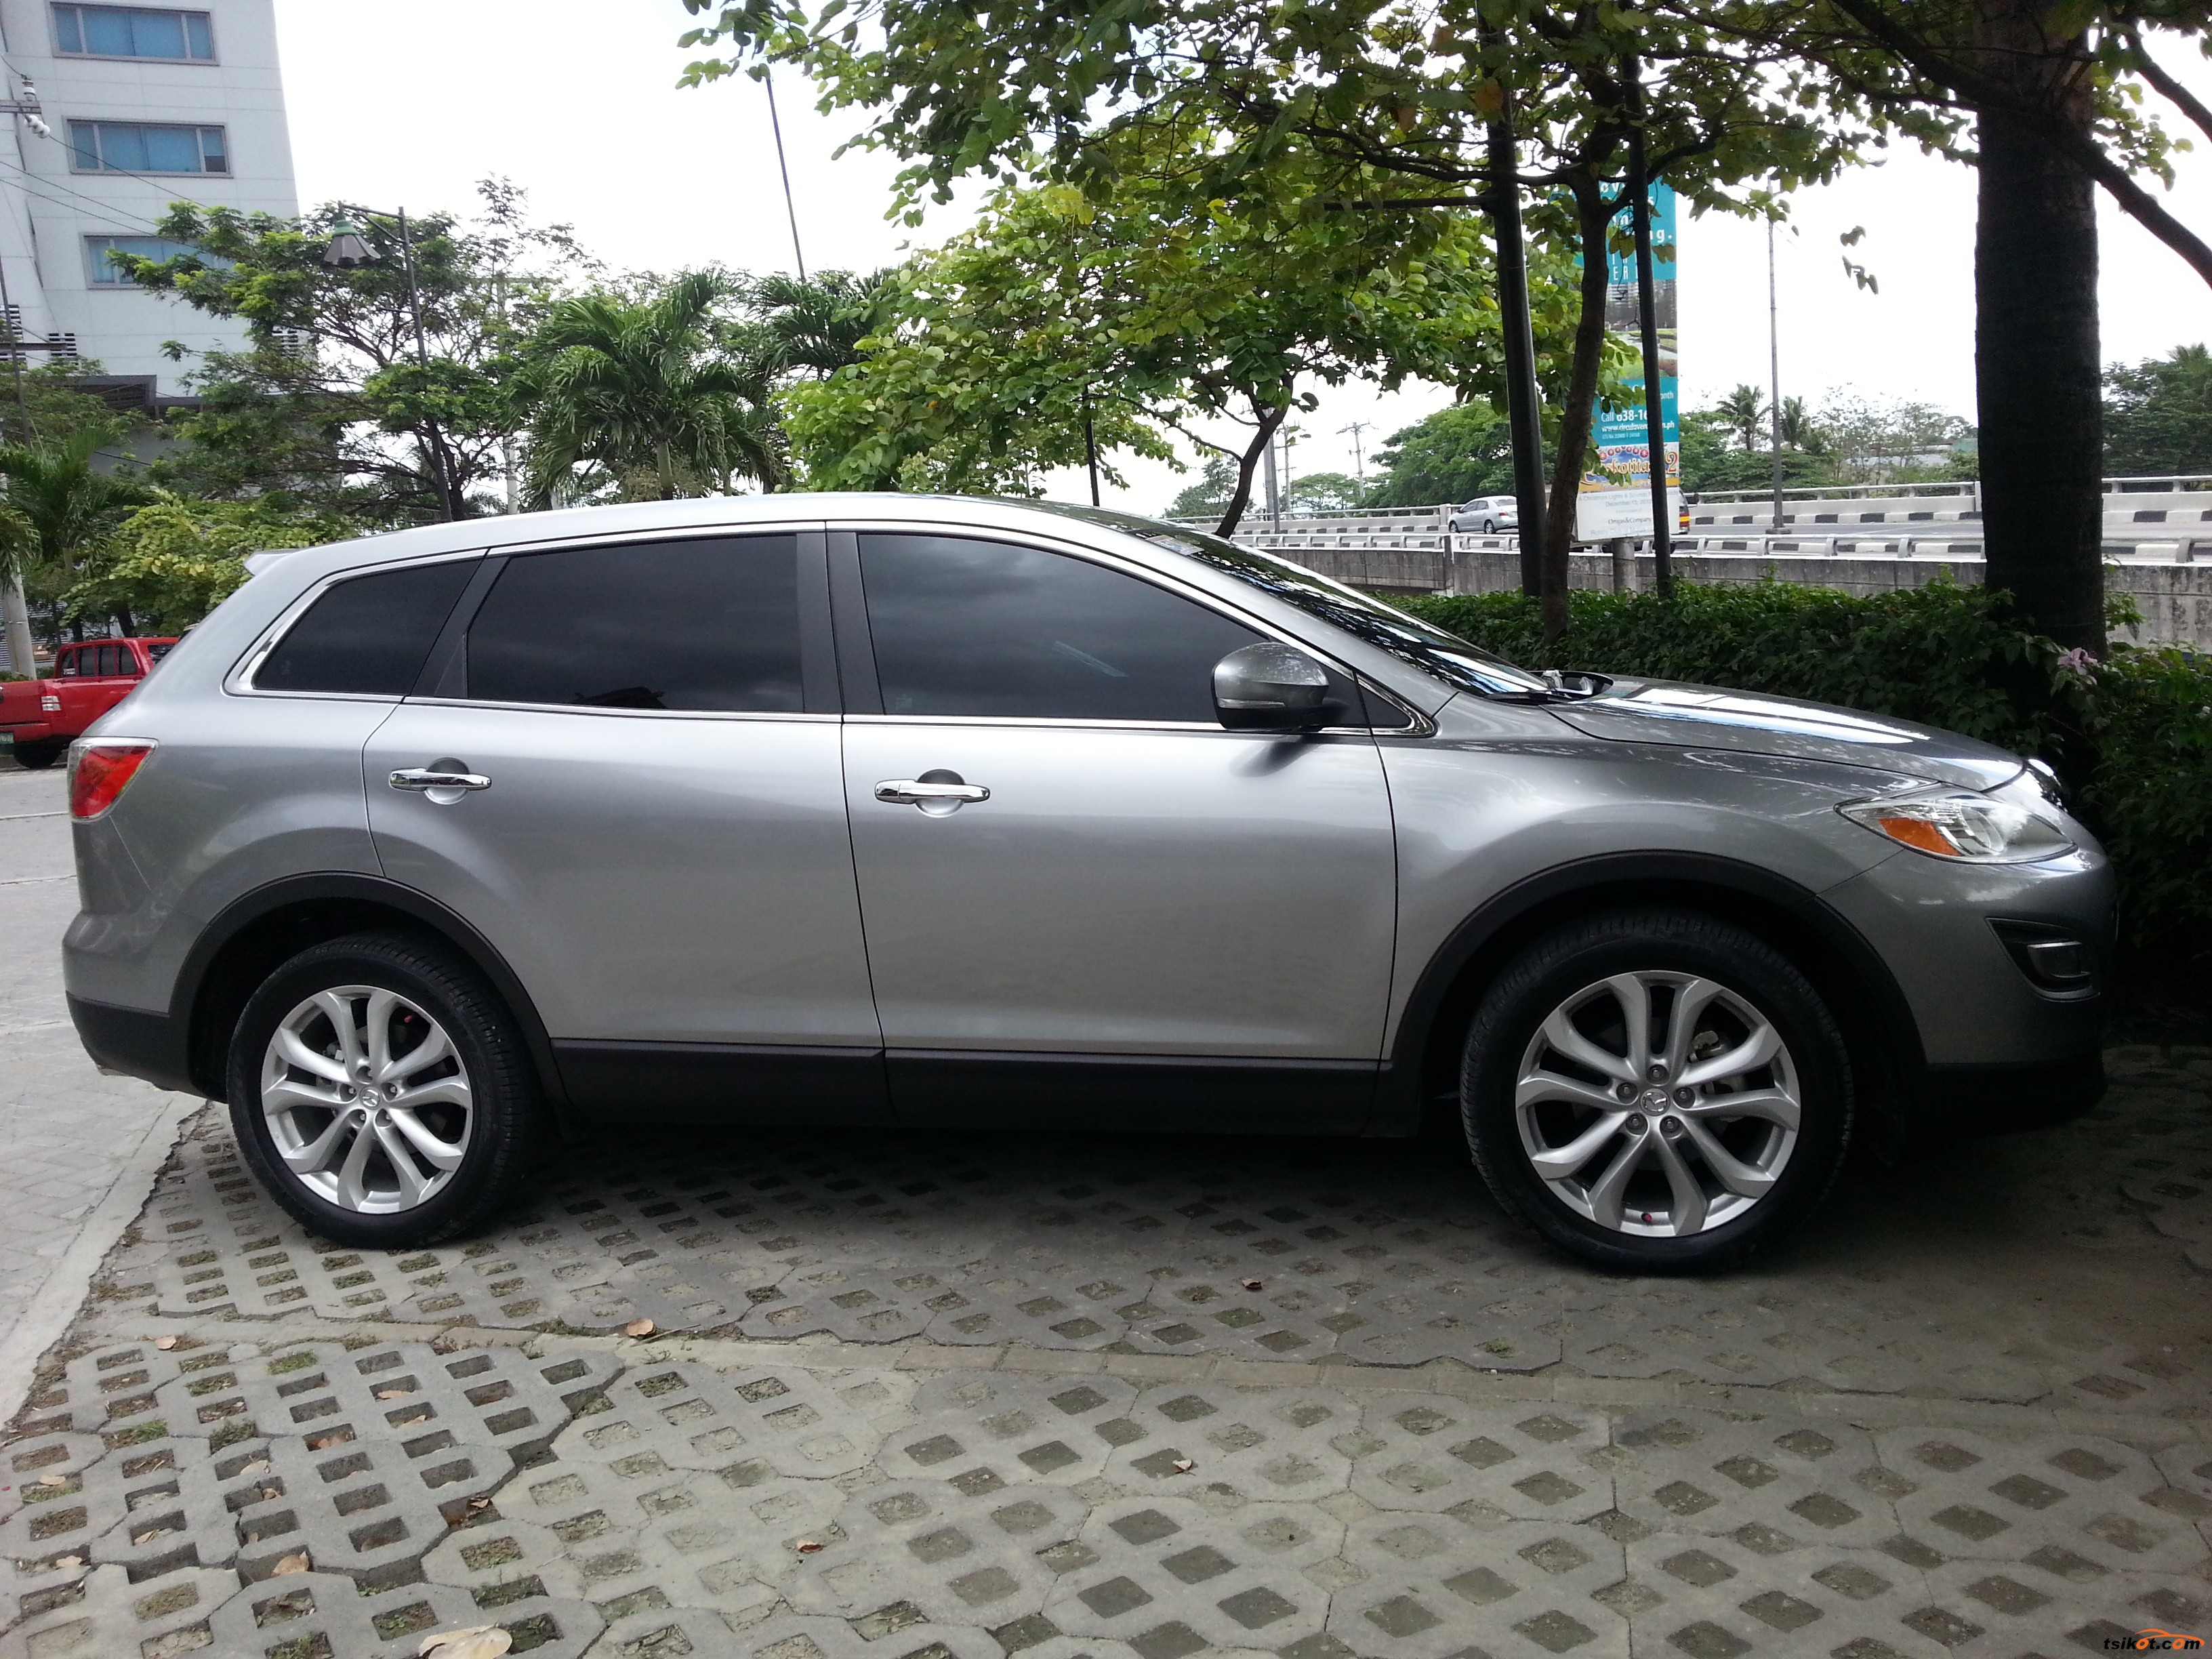 mazda cx 9 2013 car for sale metro manila philippines. Black Bedroom Furniture Sets. Home Design Ideas